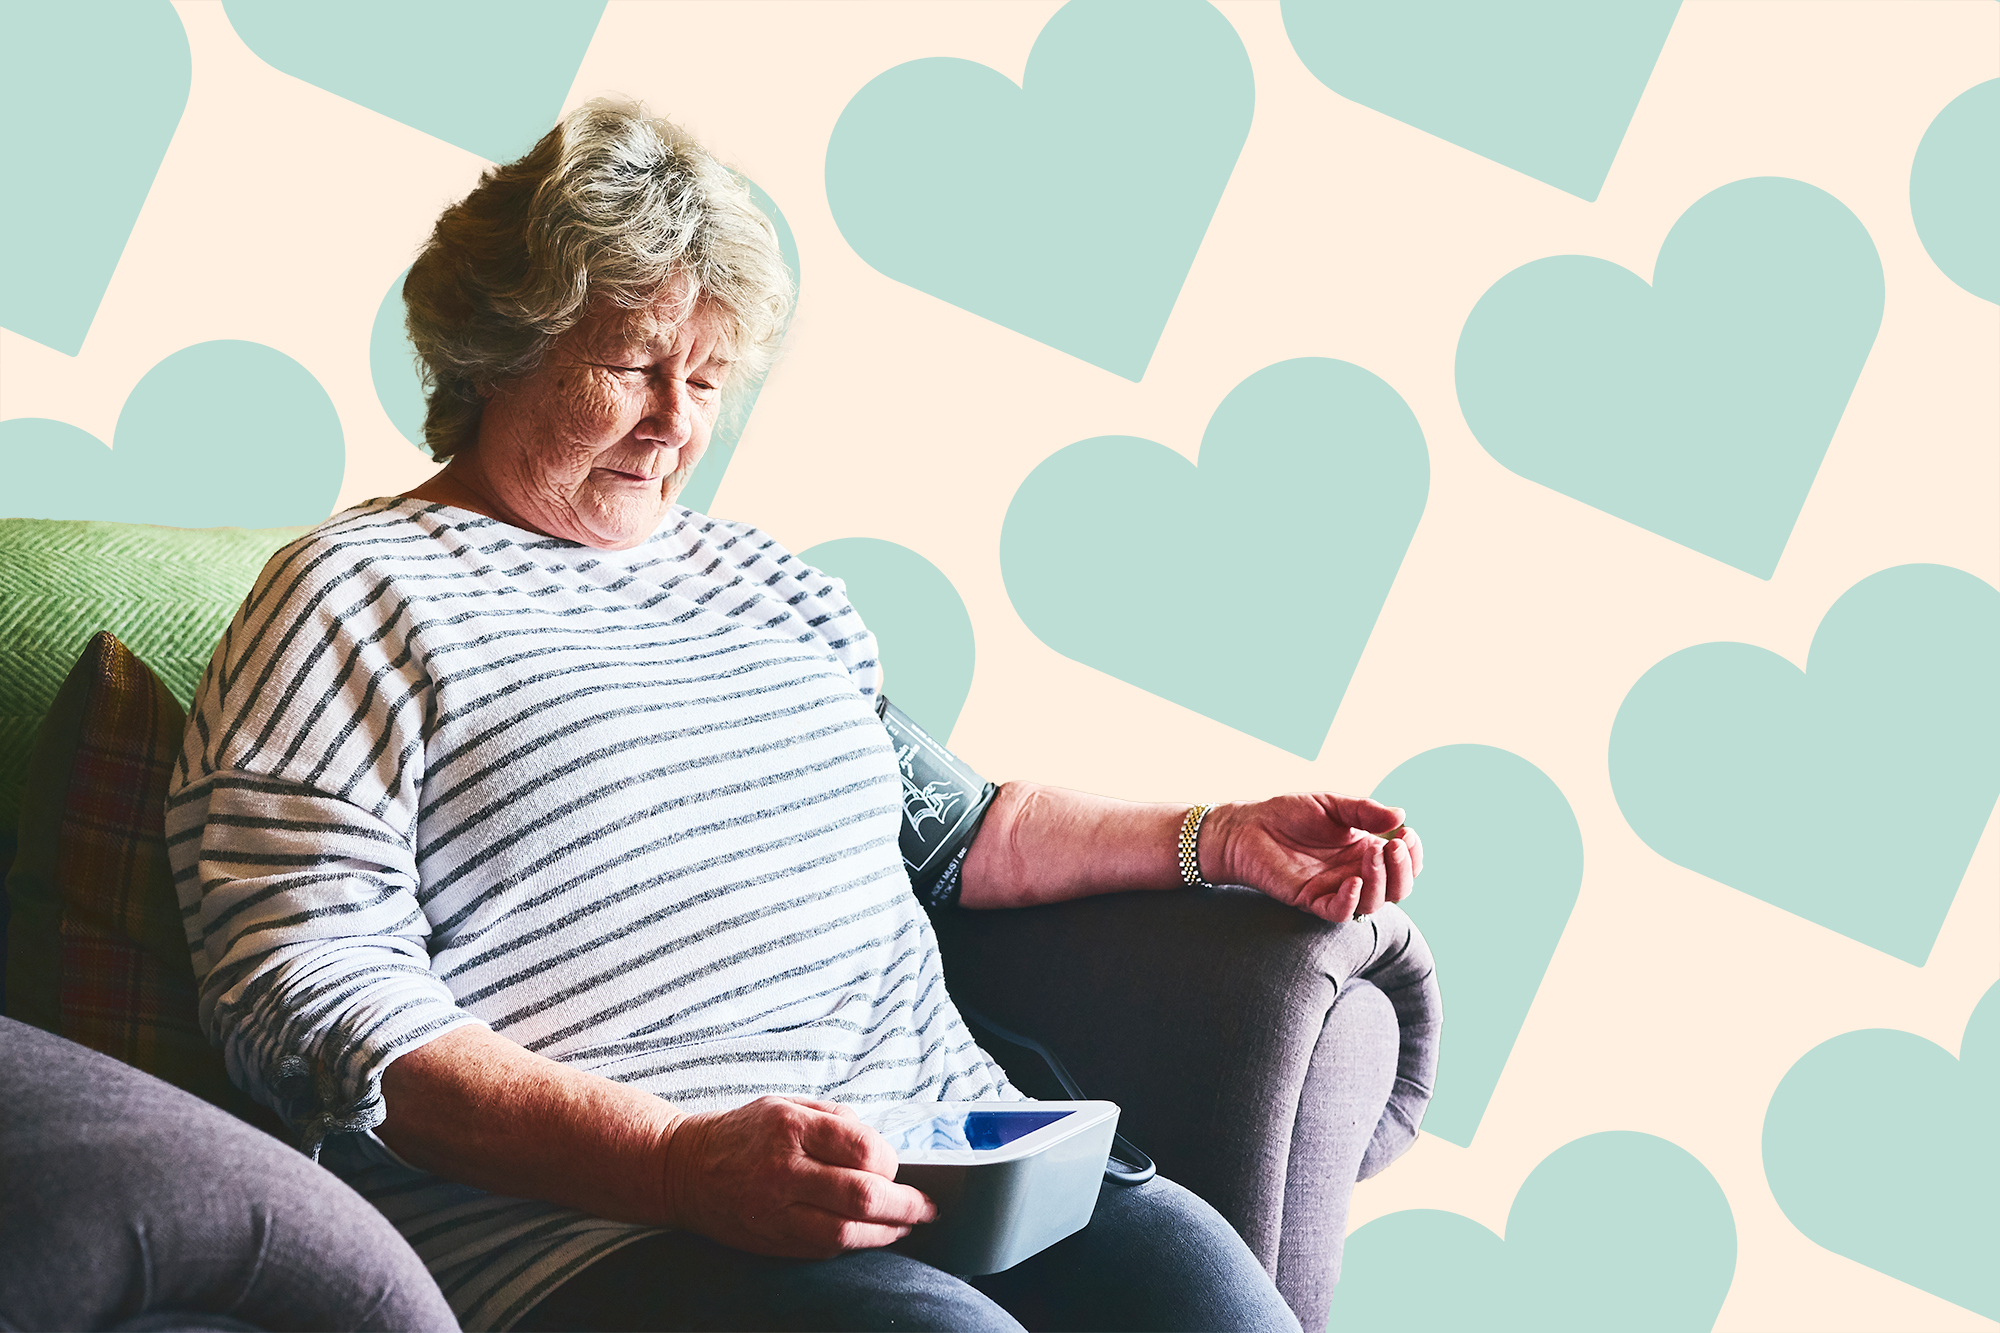 Senior woman measuring her blood pressure at home on a designed background